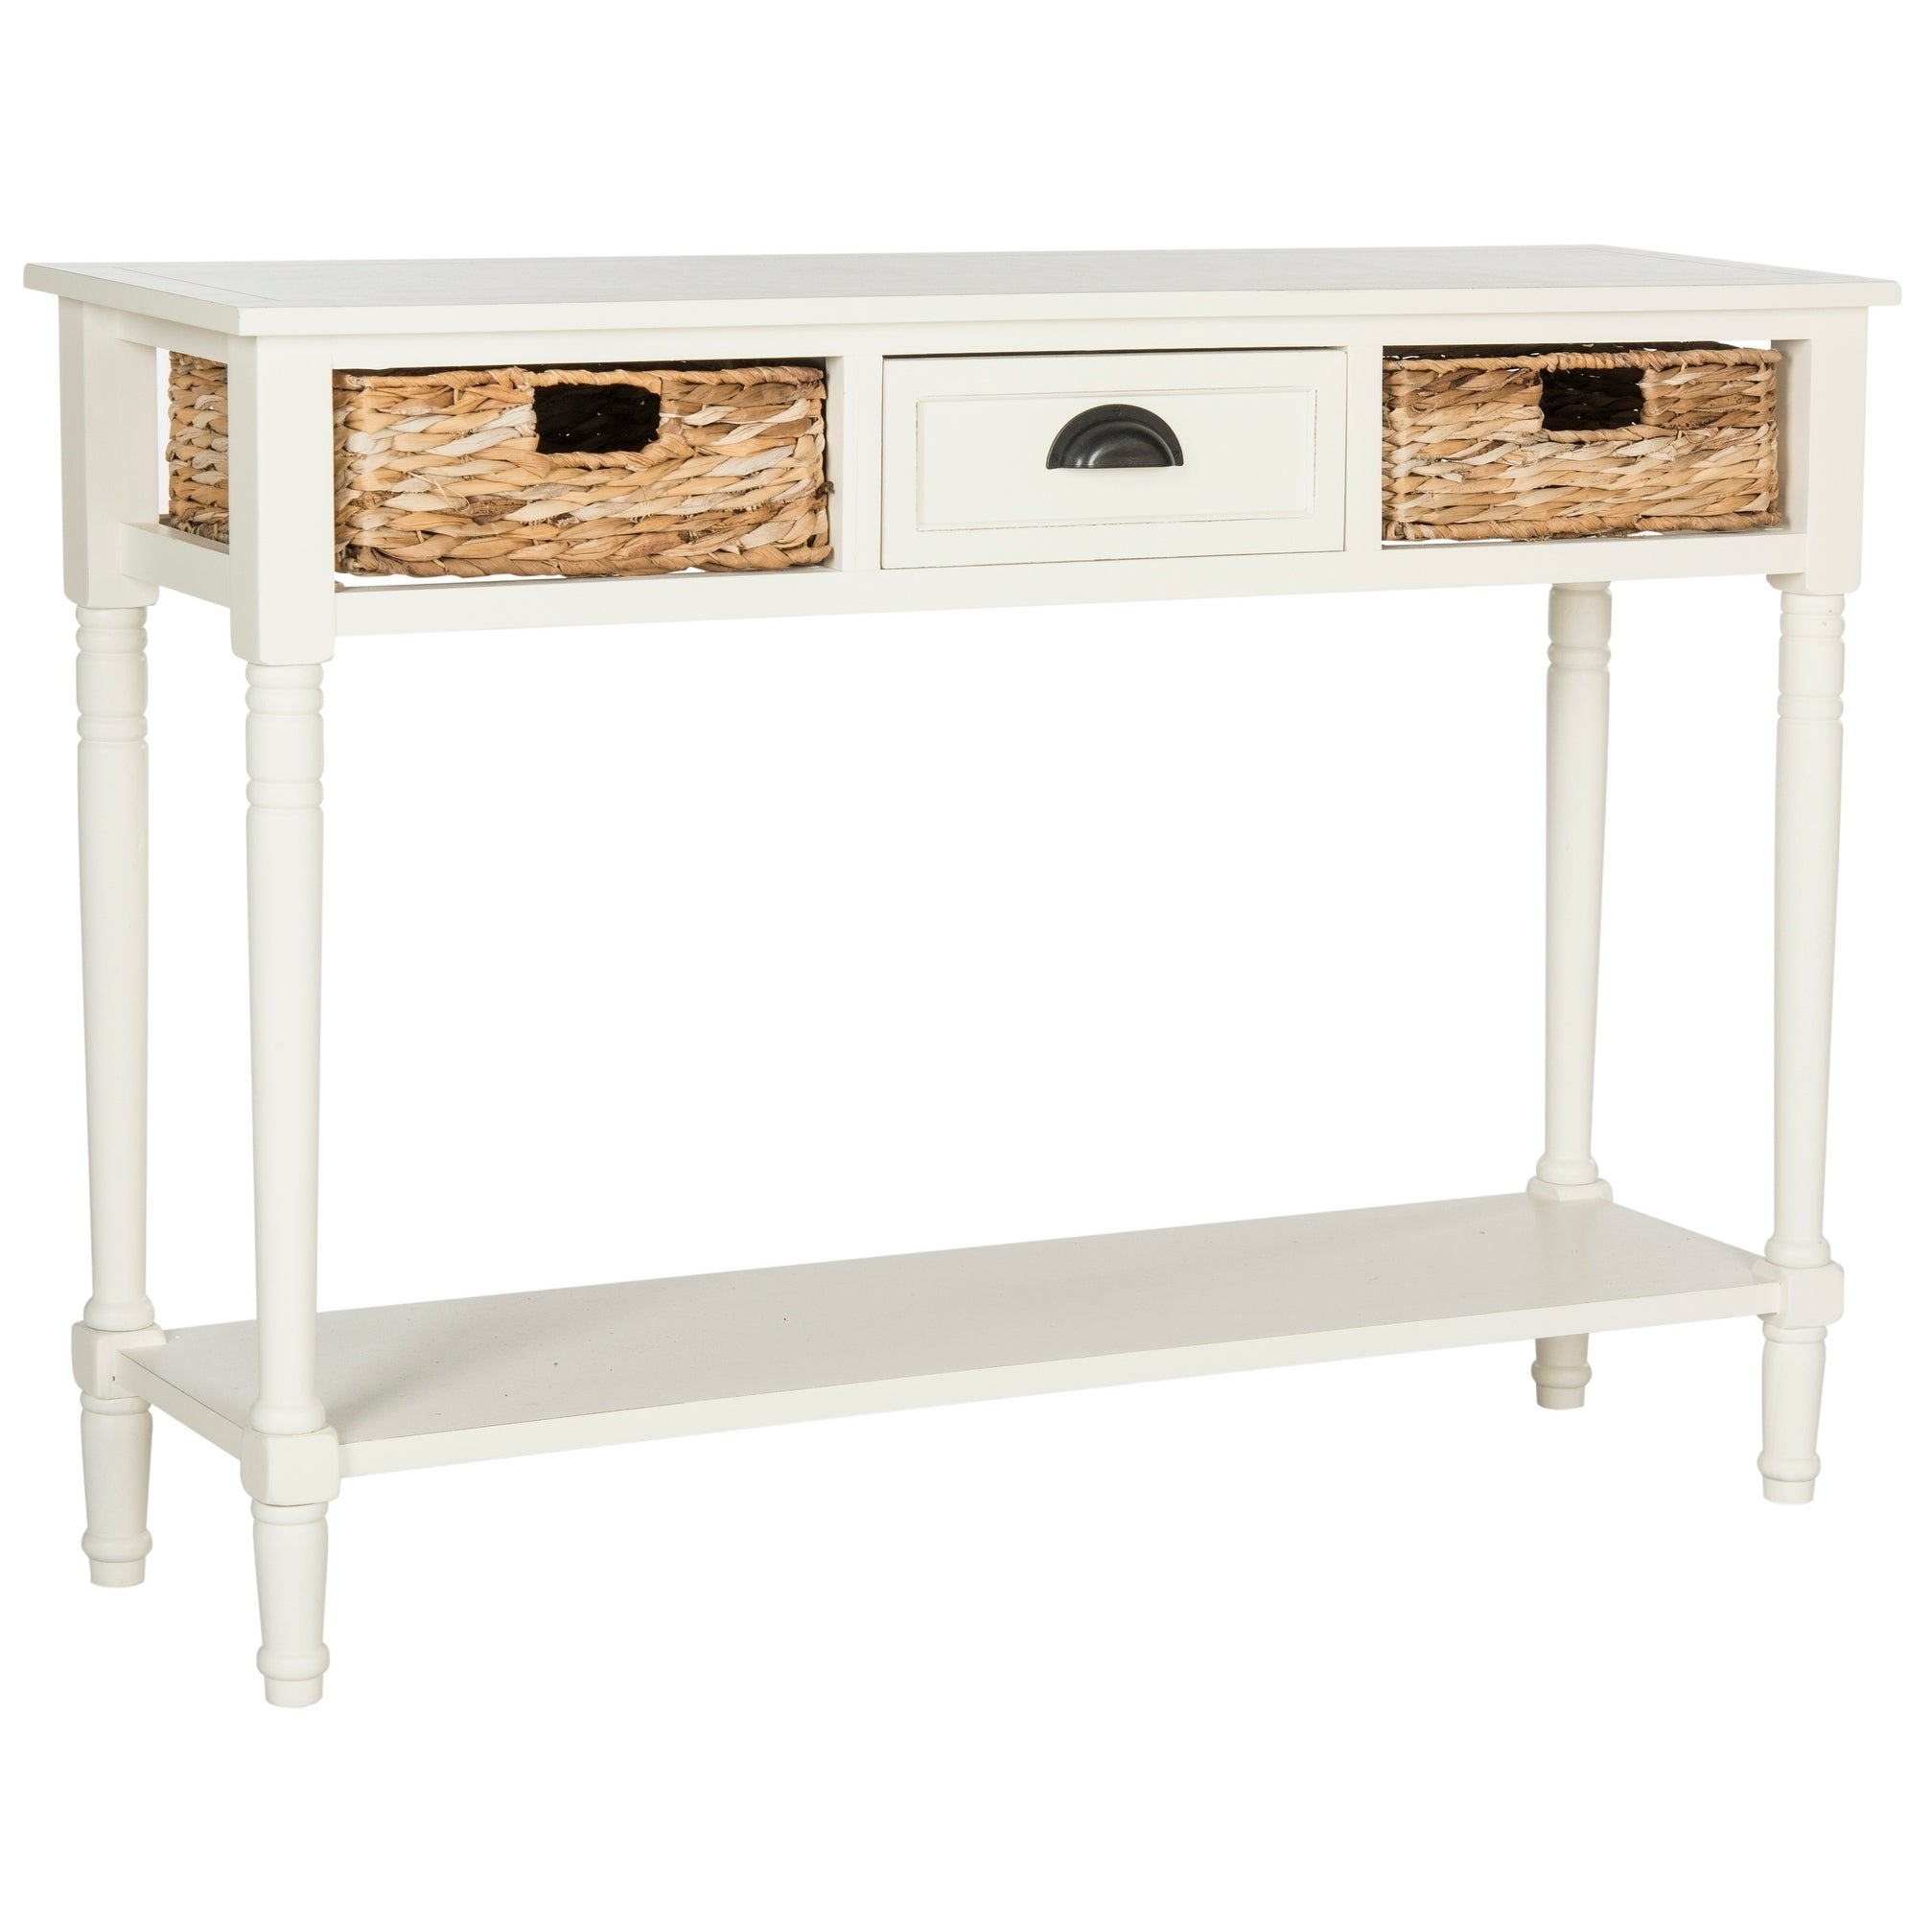 Safavieh Christa Distressed White Console Table 44 5 X 13 4 X 31 5